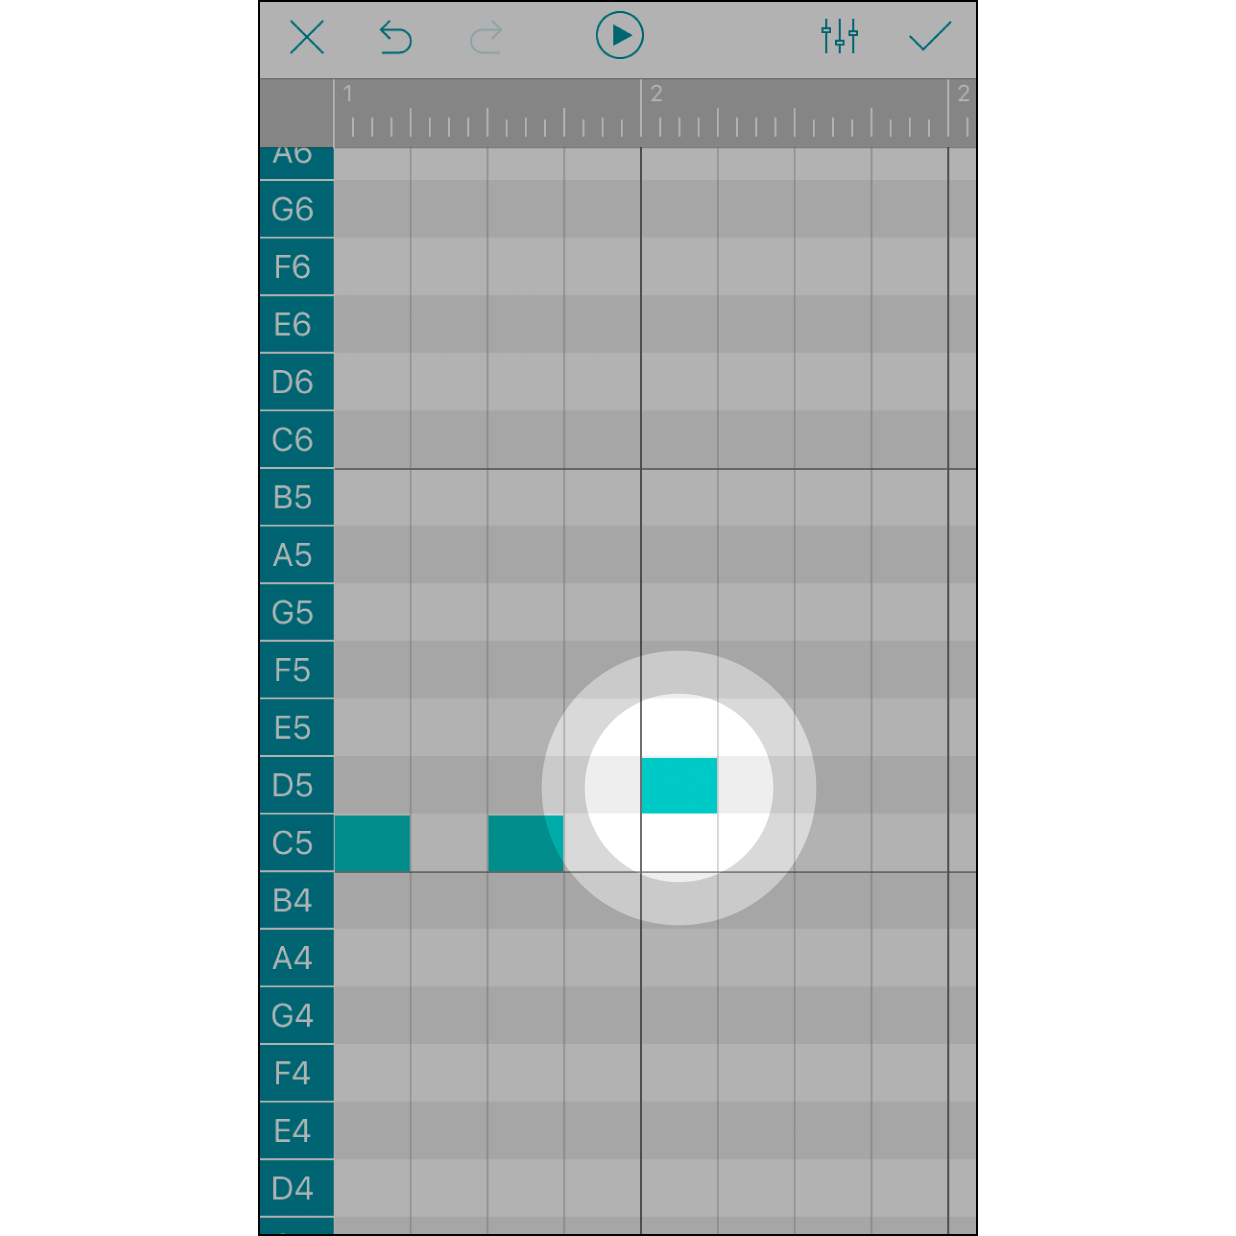 Touch to Add a NoteTouch any box on the screen to add a note at the corresponding spot. You can remove this note by touching it again.